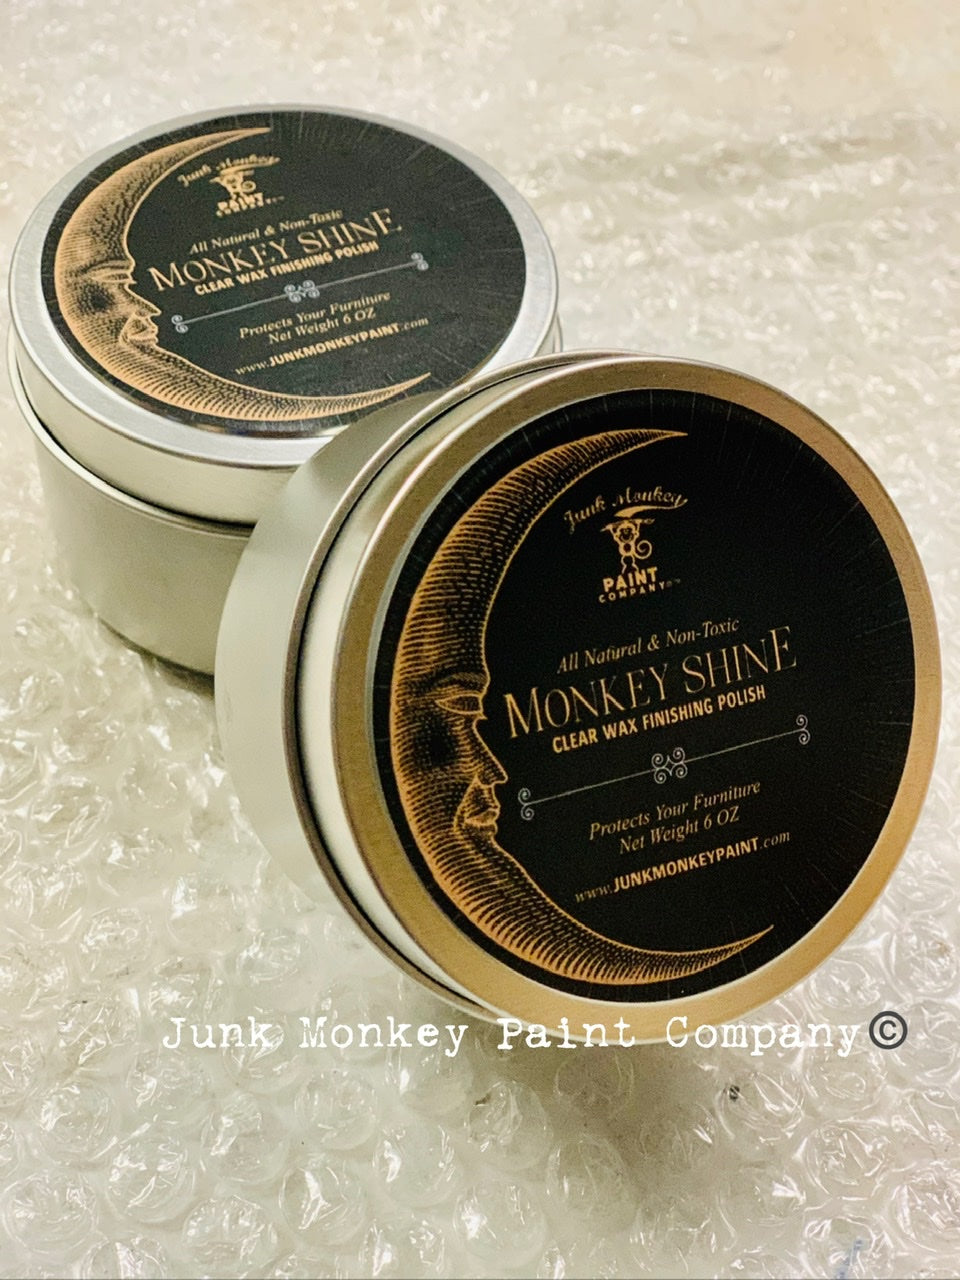 Monkey Shine - Clear Wax/Oil Finishing Polish